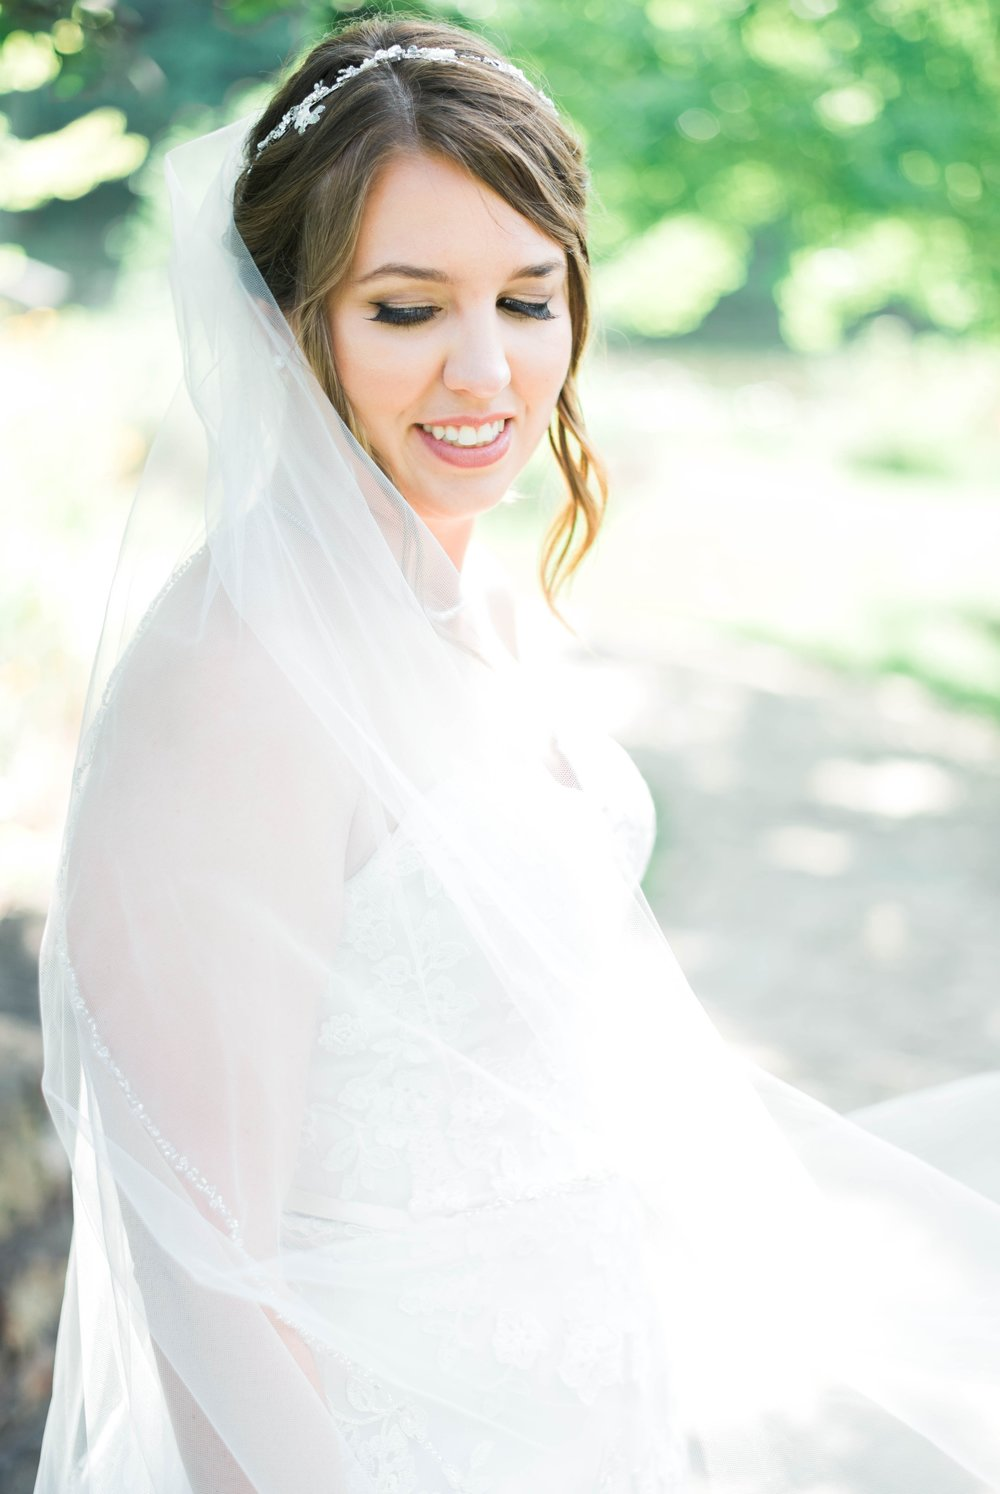 TheAtriumatMeadowlark_Virginiawedding photographer_lynchburgweddingphotographer_DCweddingPhotographer_KristinAaron 50.jpg